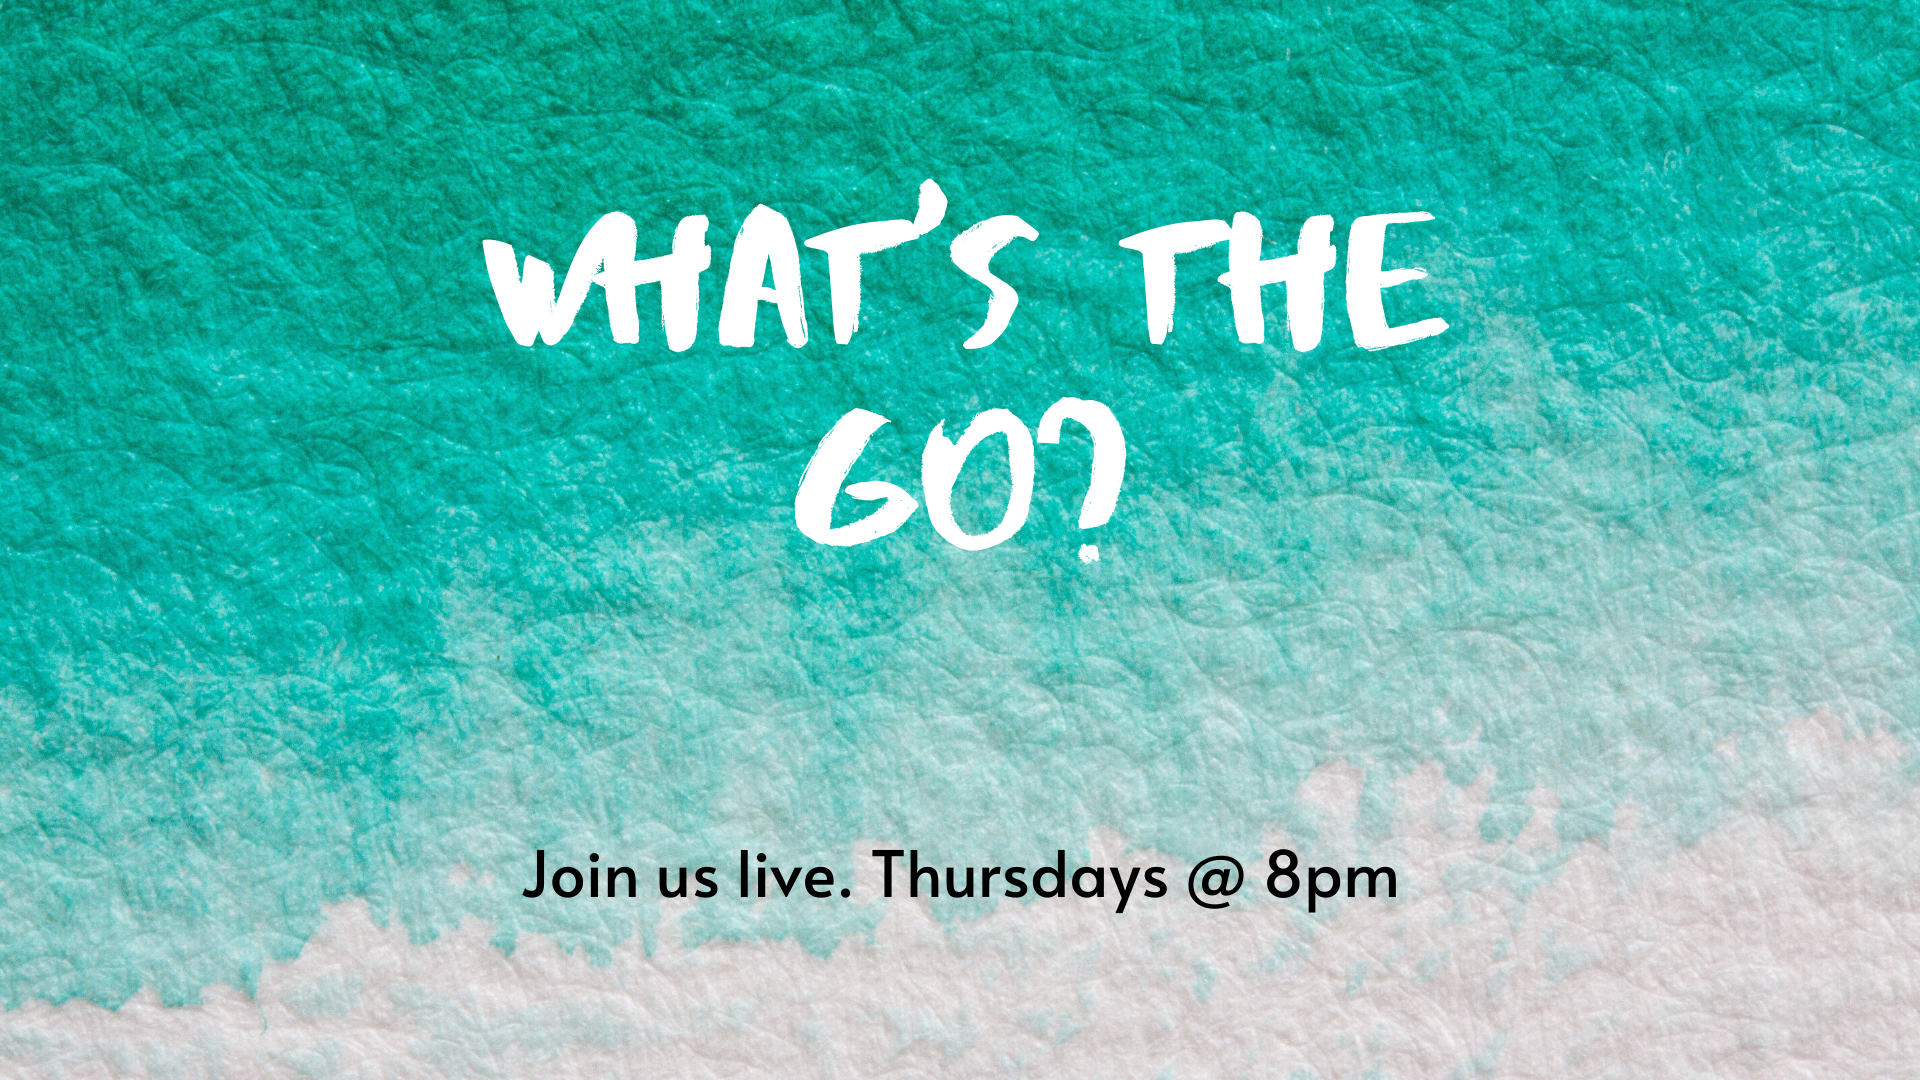 Introducing: What's the Go?